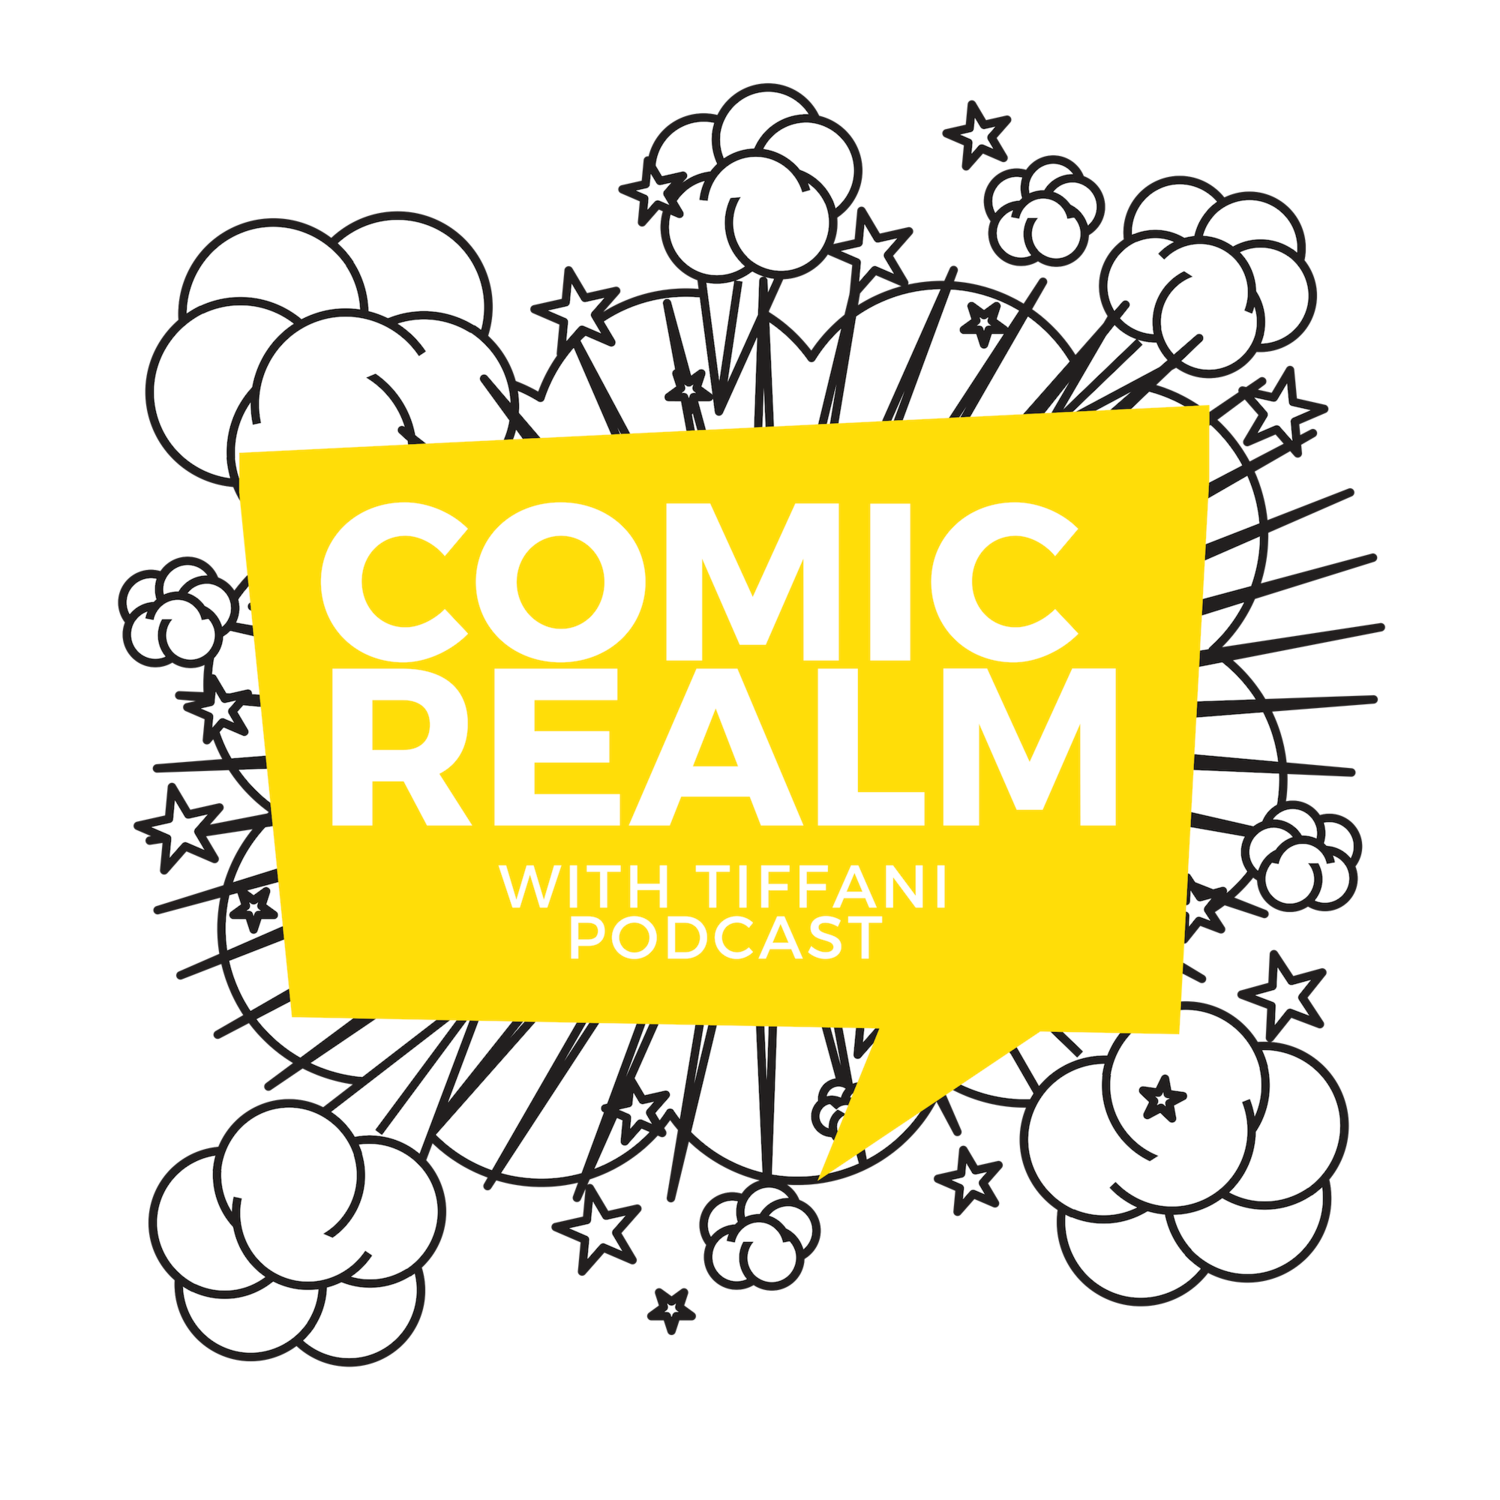 Comic Realm with Tiffani